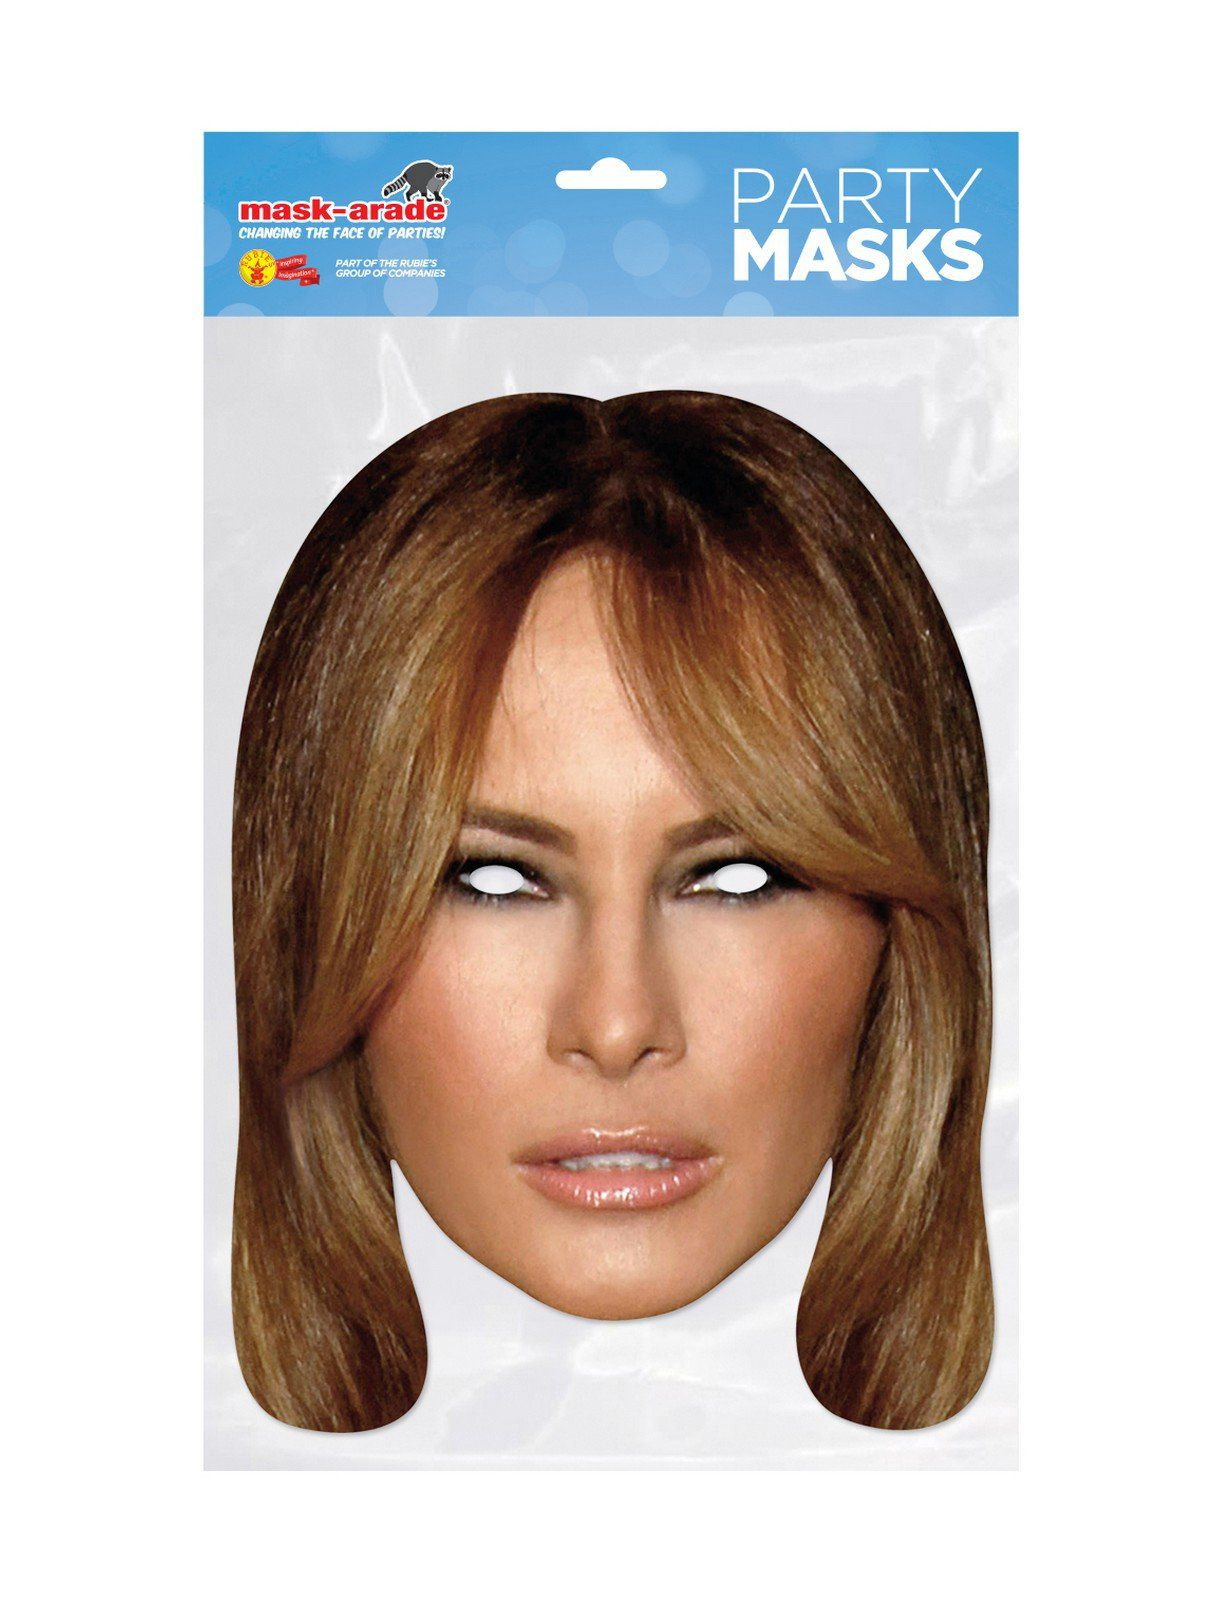 Melania Halloween Outfit 2020 Face Mask   Melania Trump   Costume Accessories for 2019